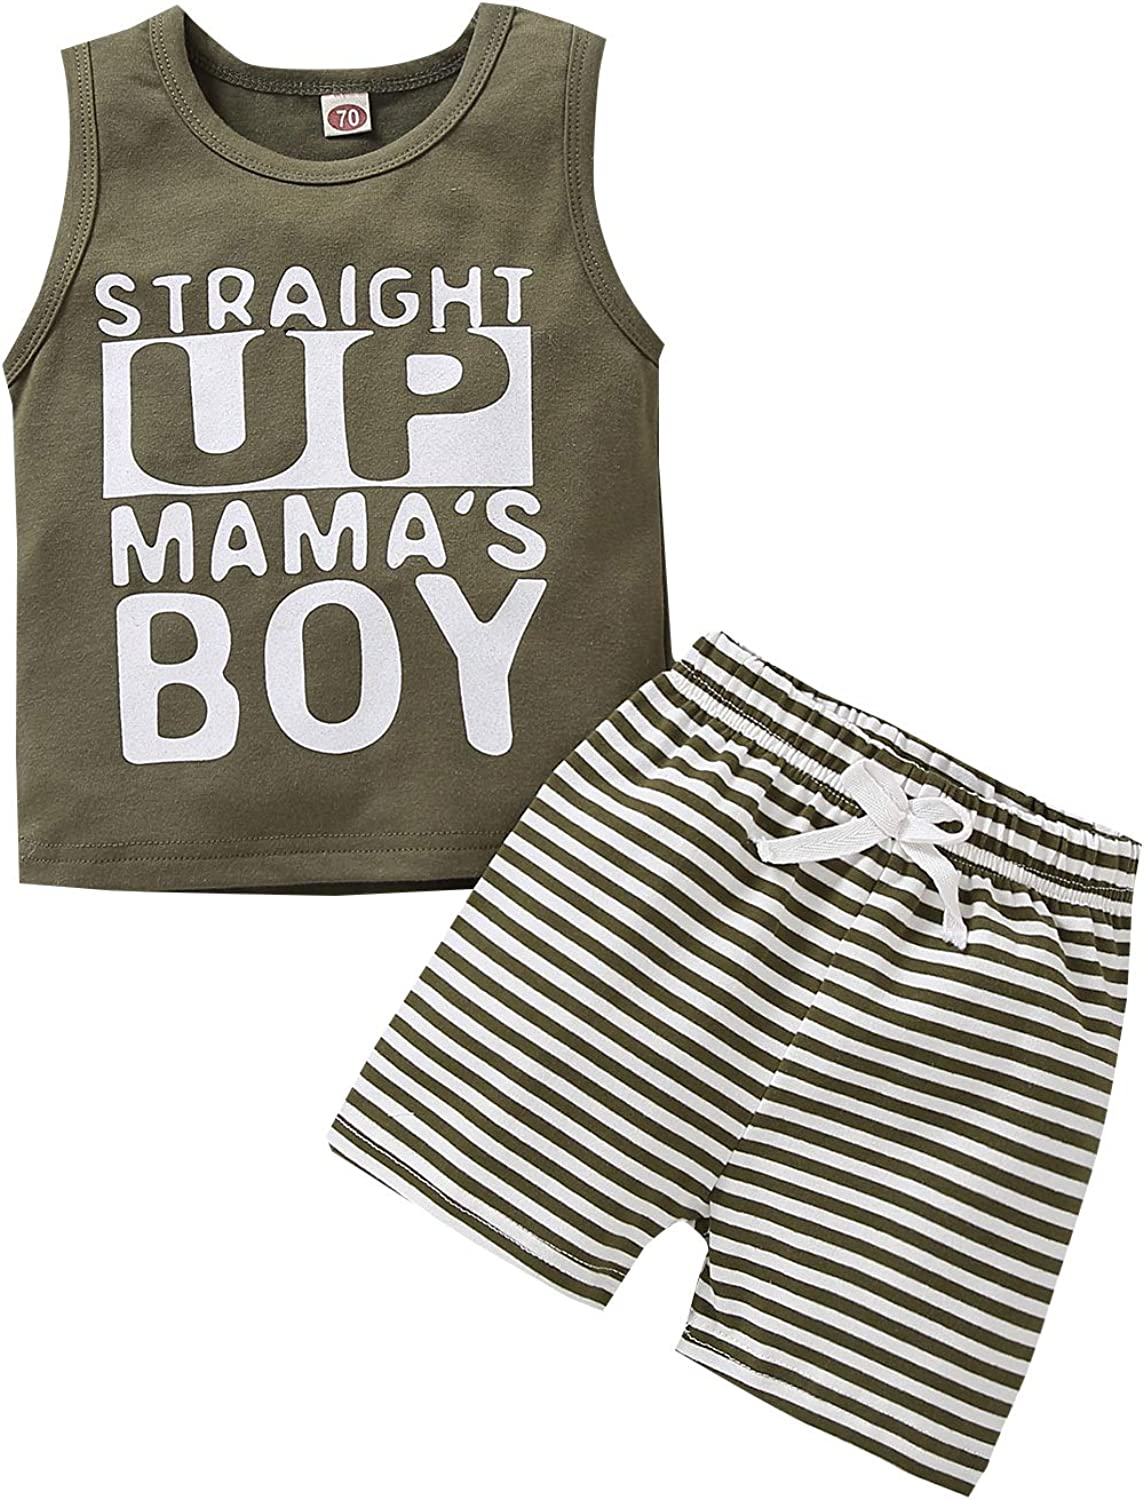 Summer Baby Boy Clothes Set Straight Up Mama's Boy Striped Outfits Sleeveless Letter Print Cotton Tops+Shorts 2PCS